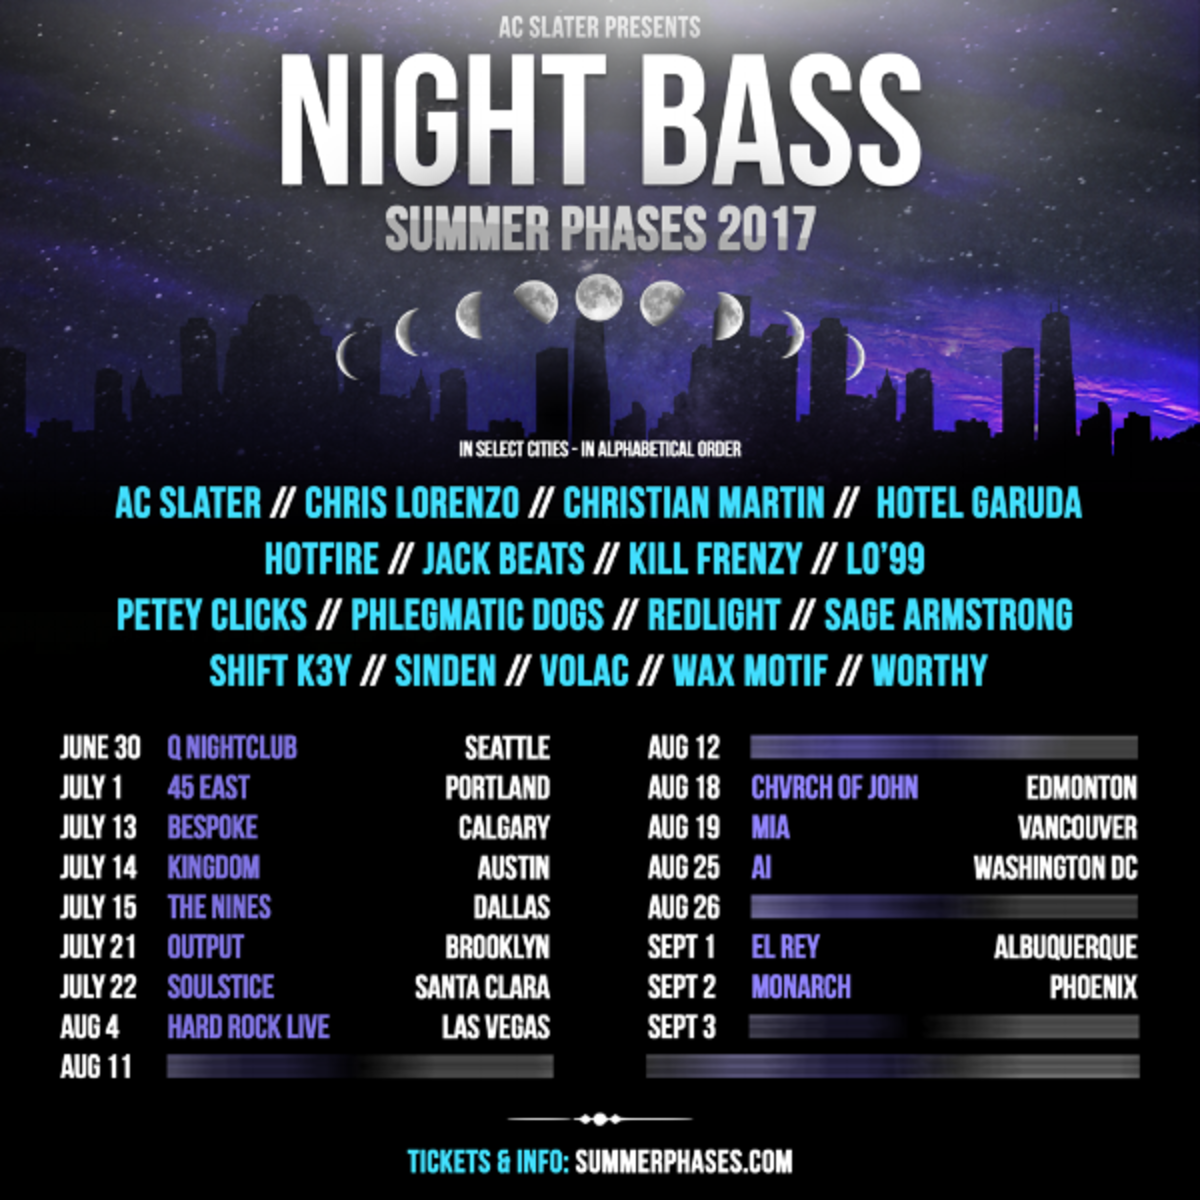 Night Bass Summer Phases 2017 Tour